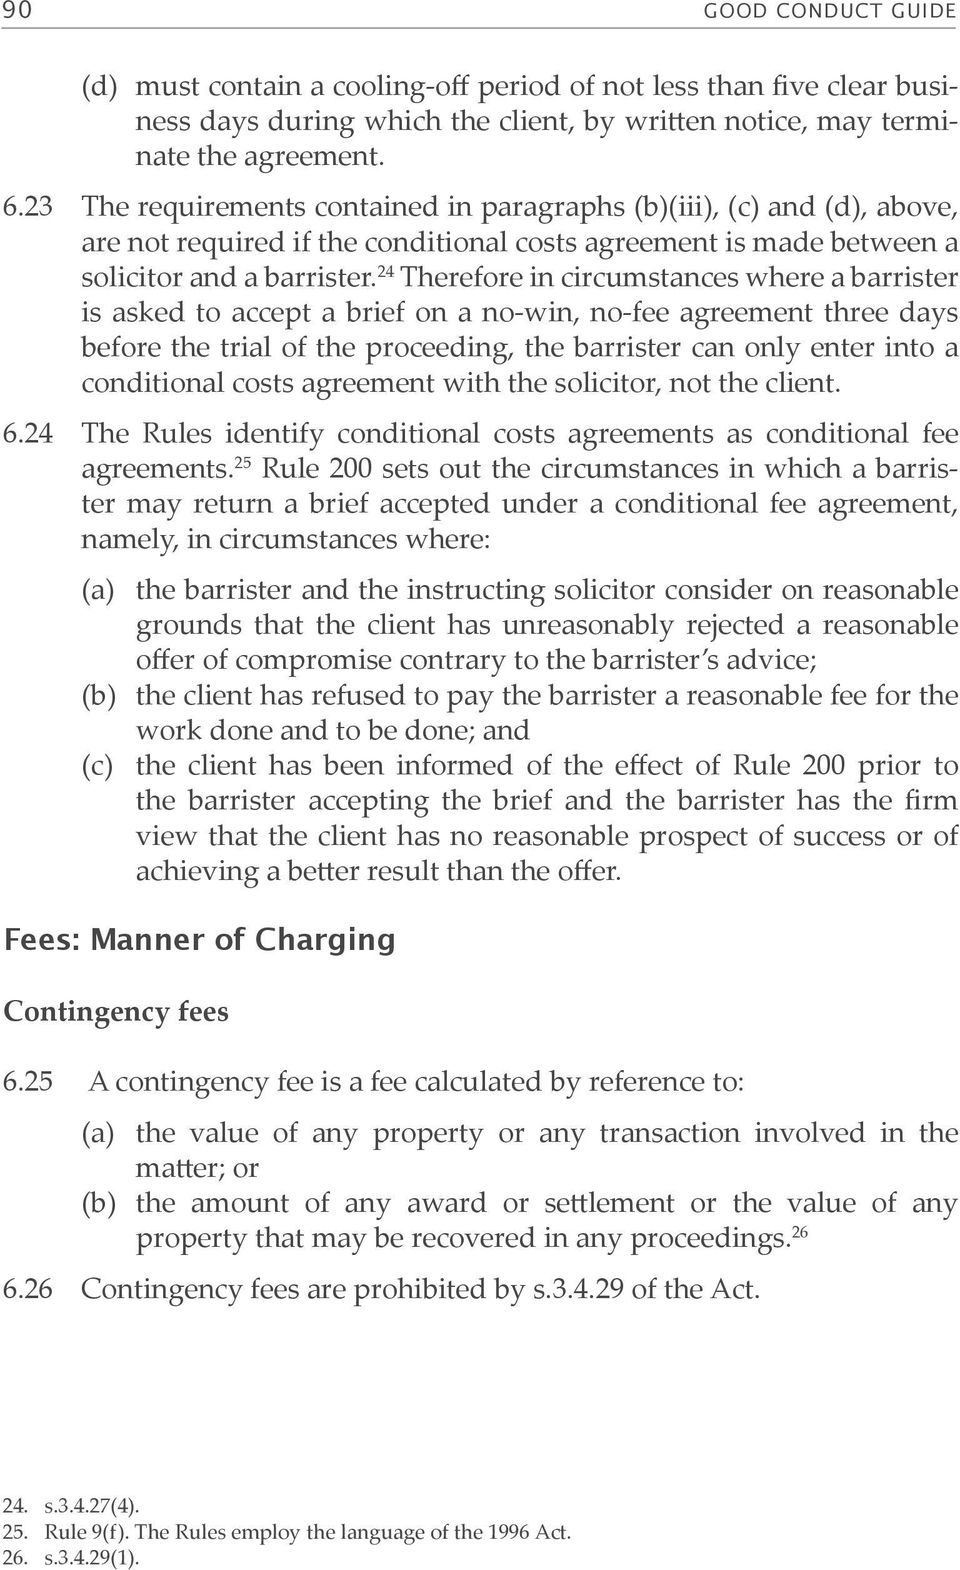 24 Therefore in circumstances where a barrister is asked to accept a brief on a no-win, no-fee agreement three days before the trial of the proceeding, the barrister can only enter into a conditional